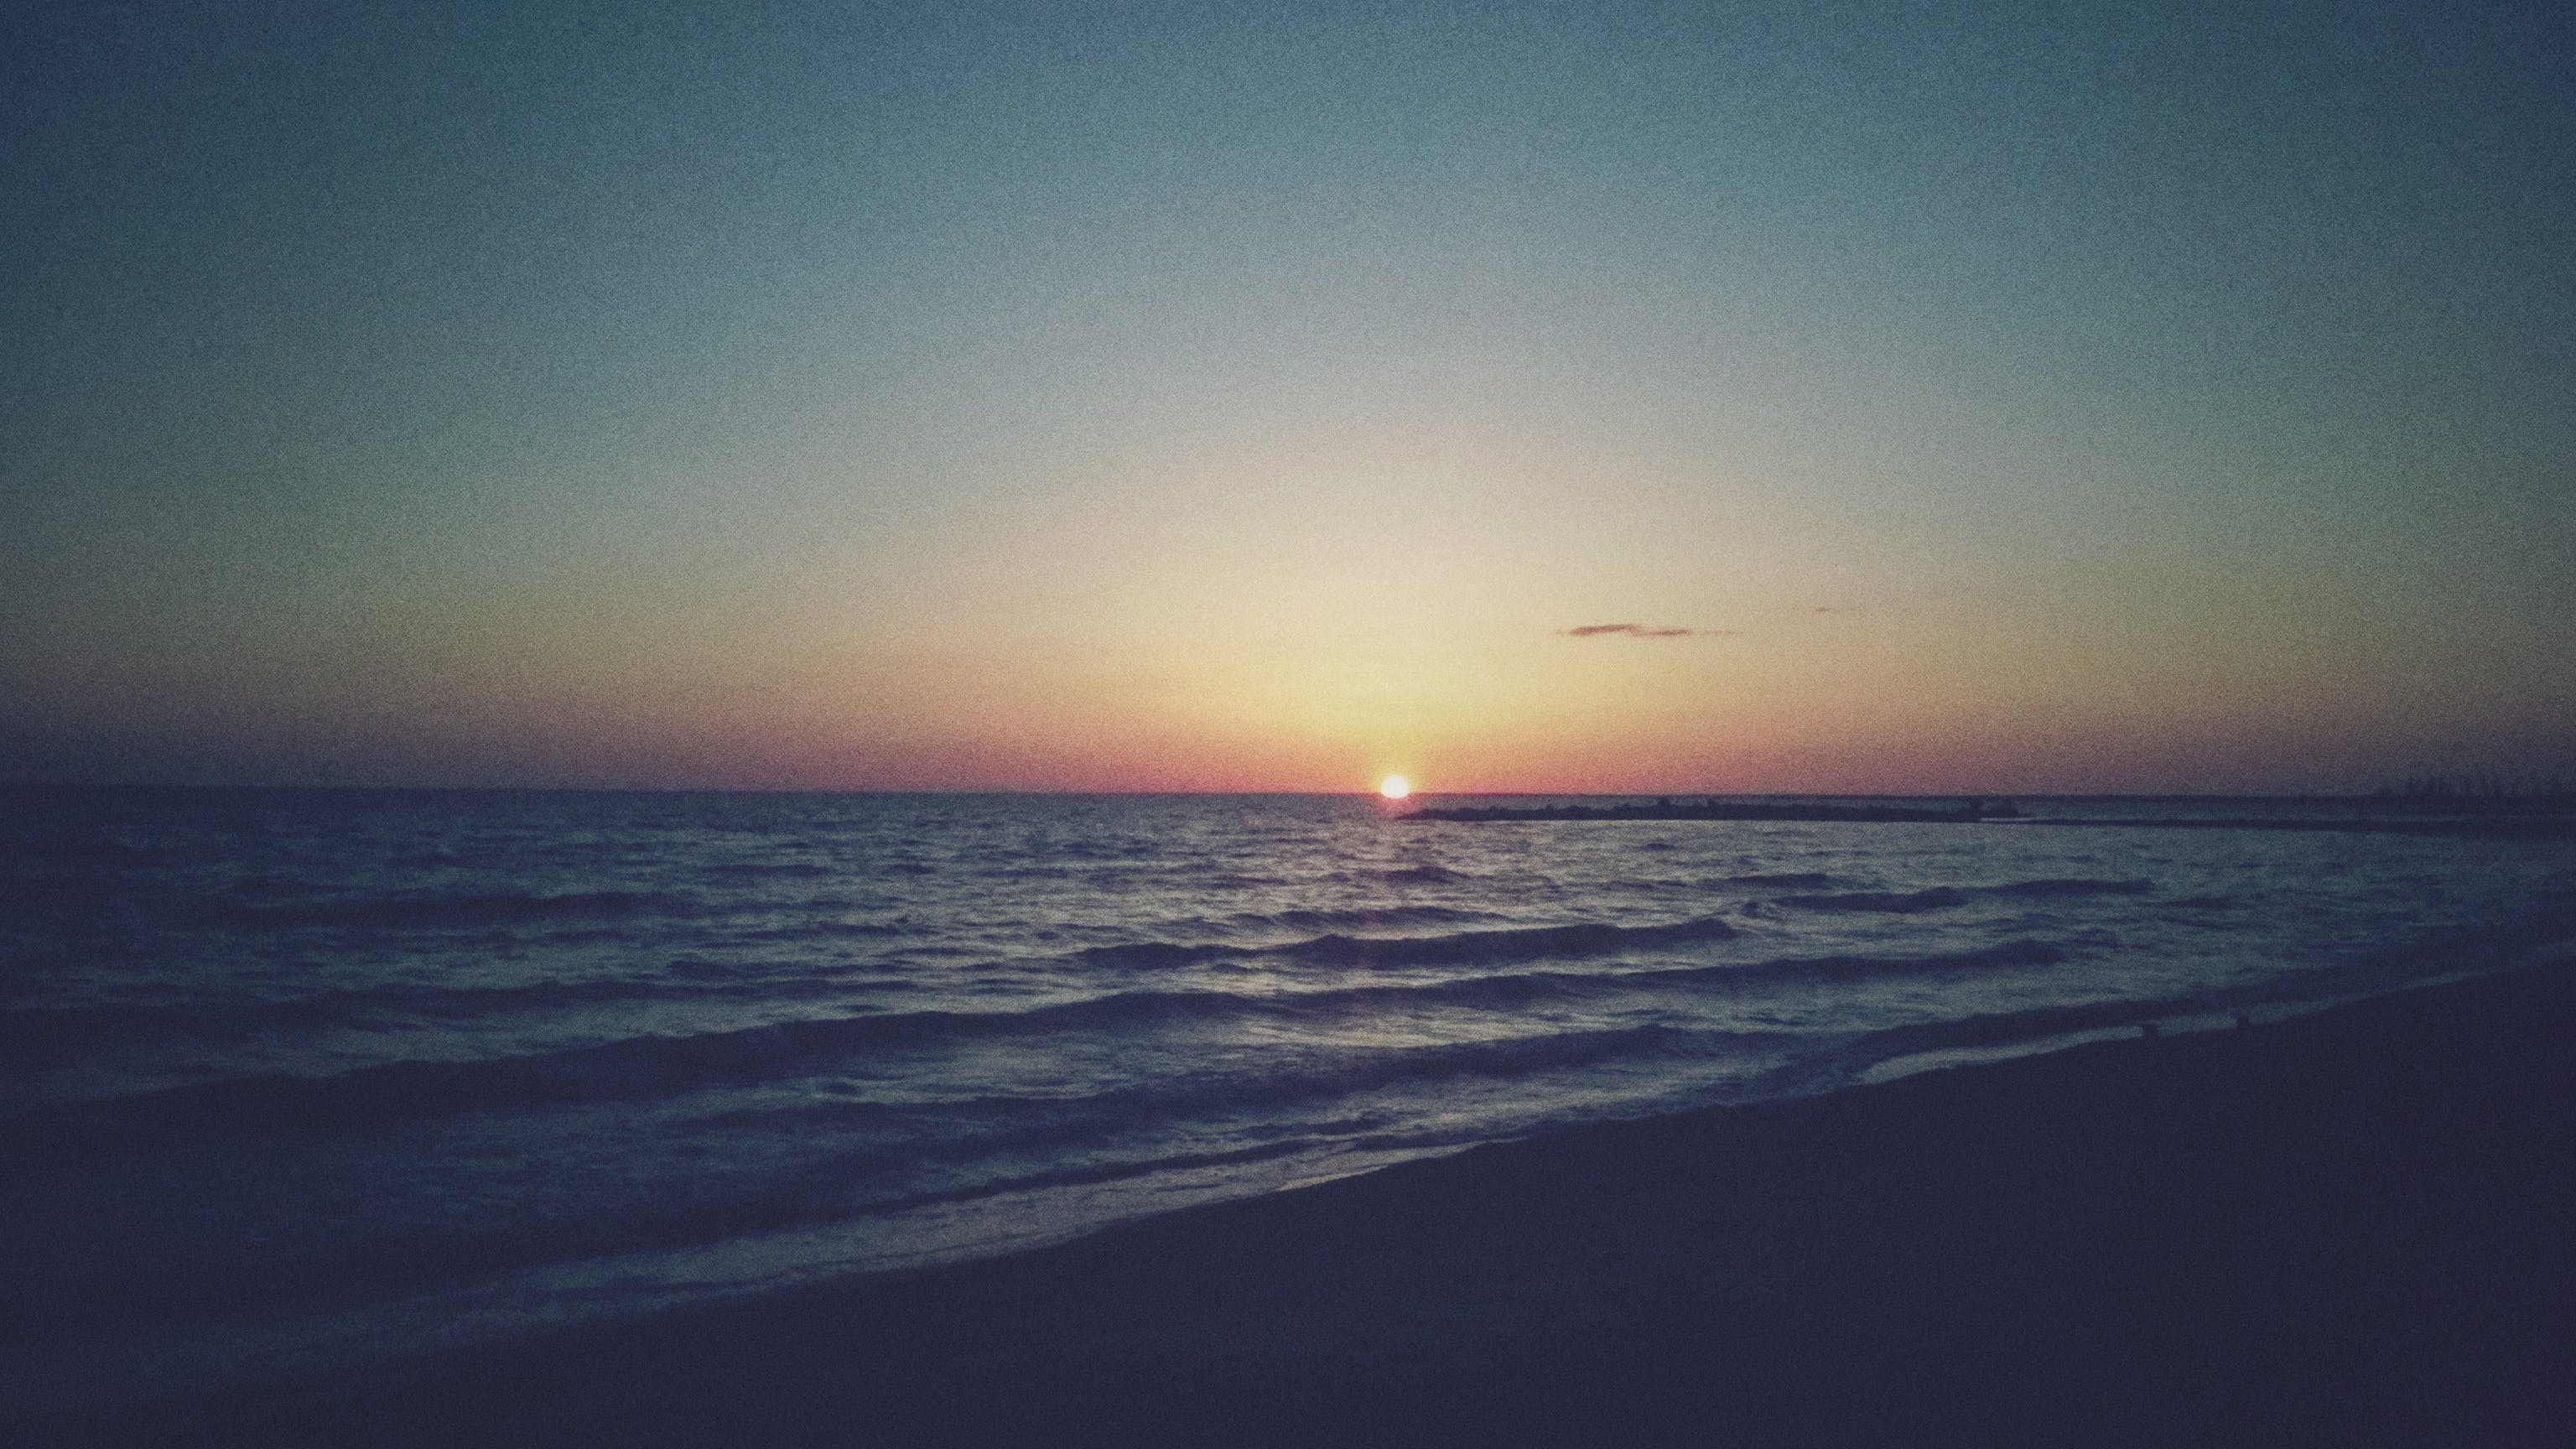 Free stock photo of atmospheric evening, sea beach, sunset over the sea